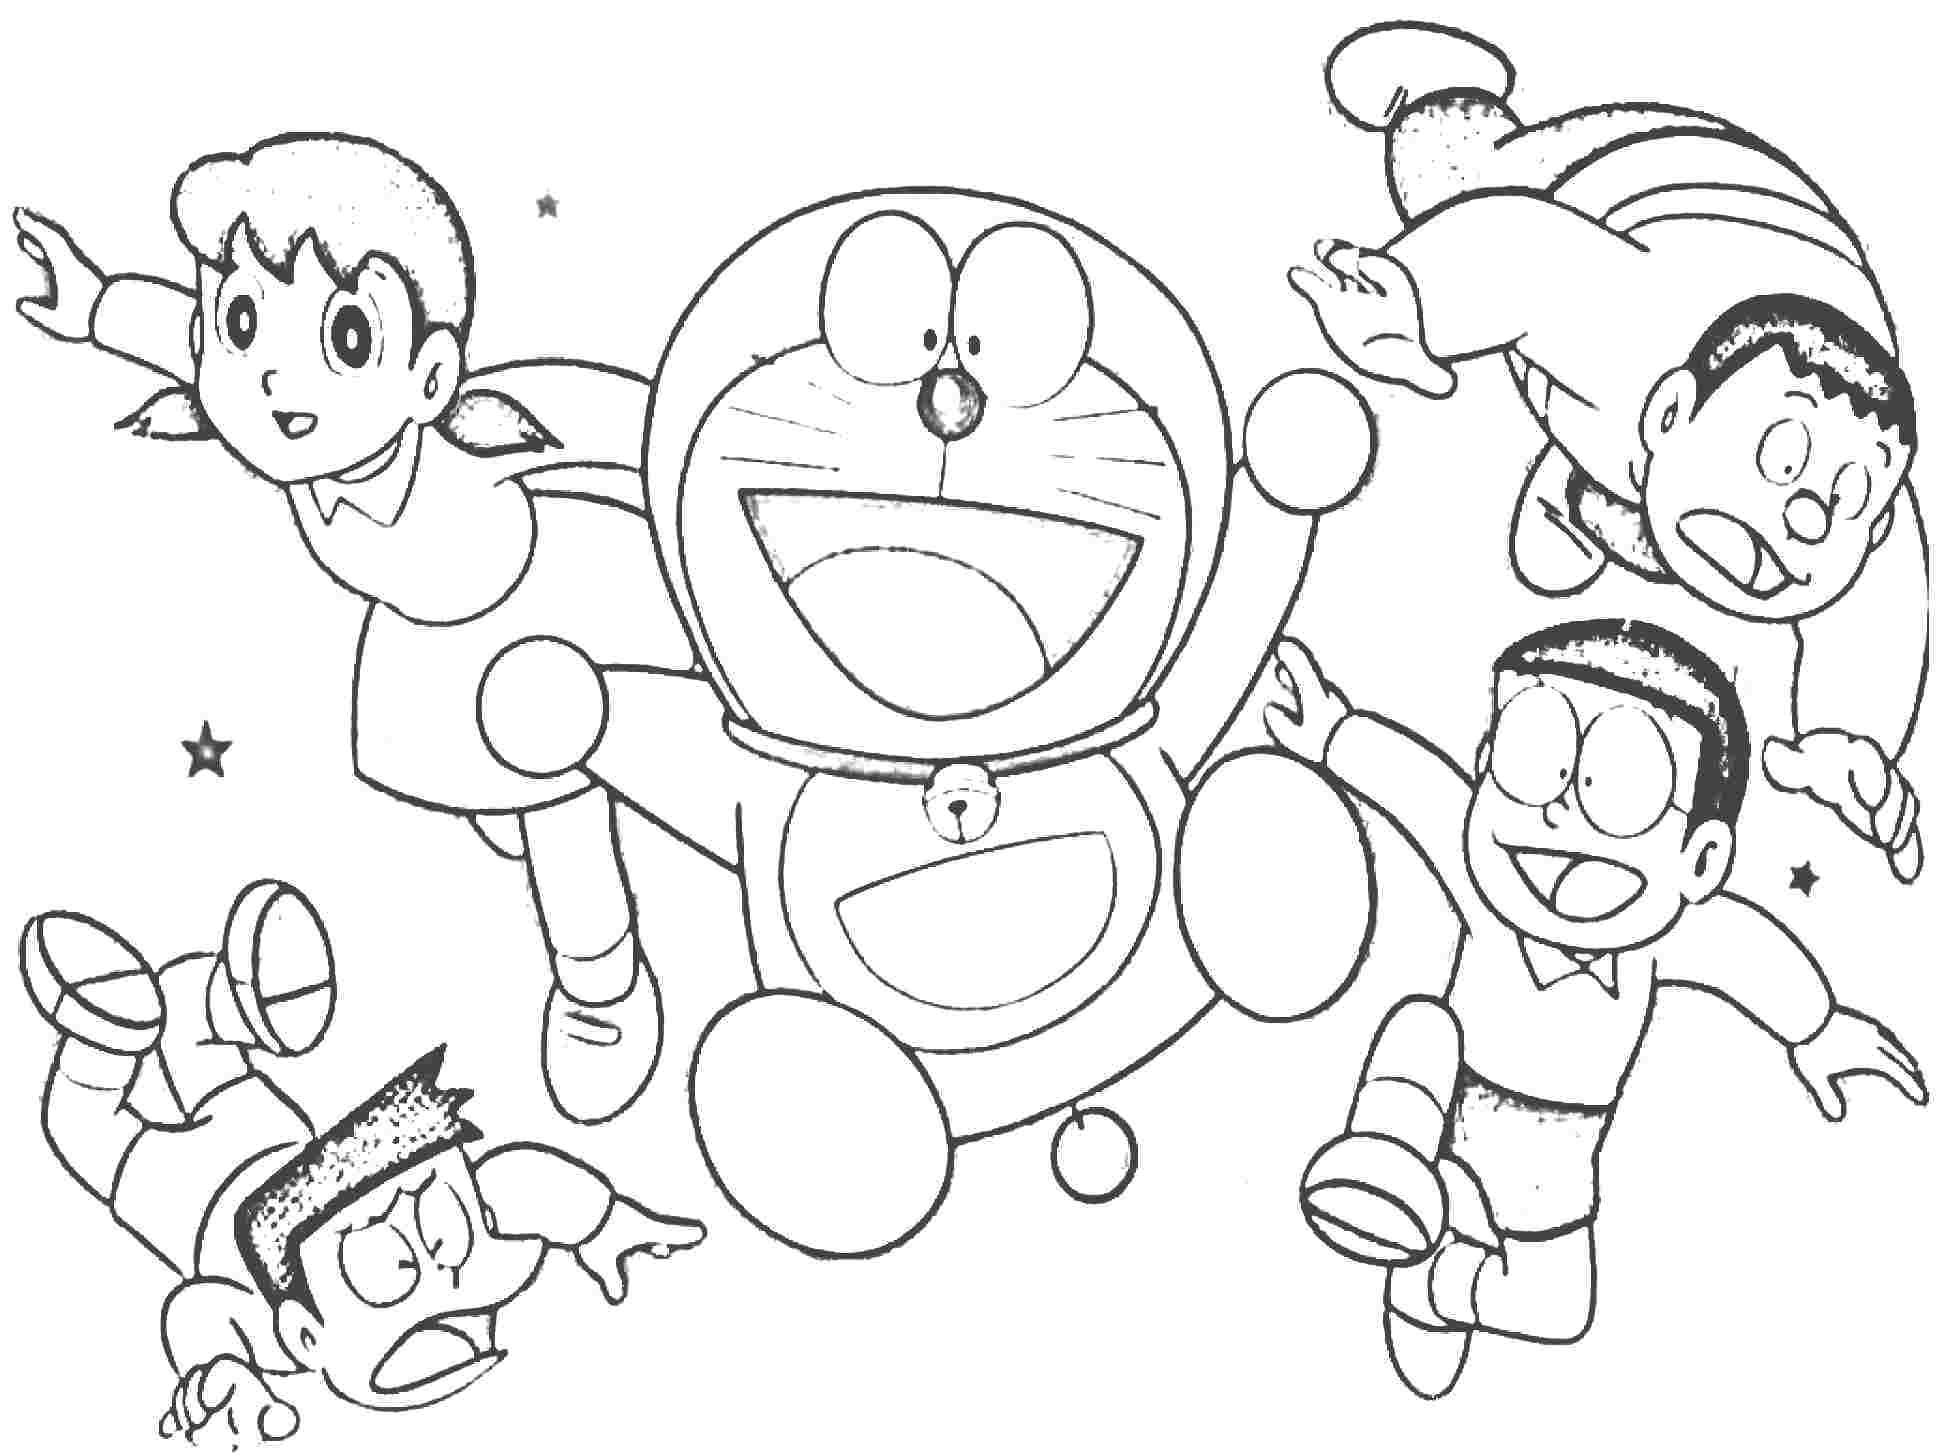 doraemon-cartoon-coloring-pages